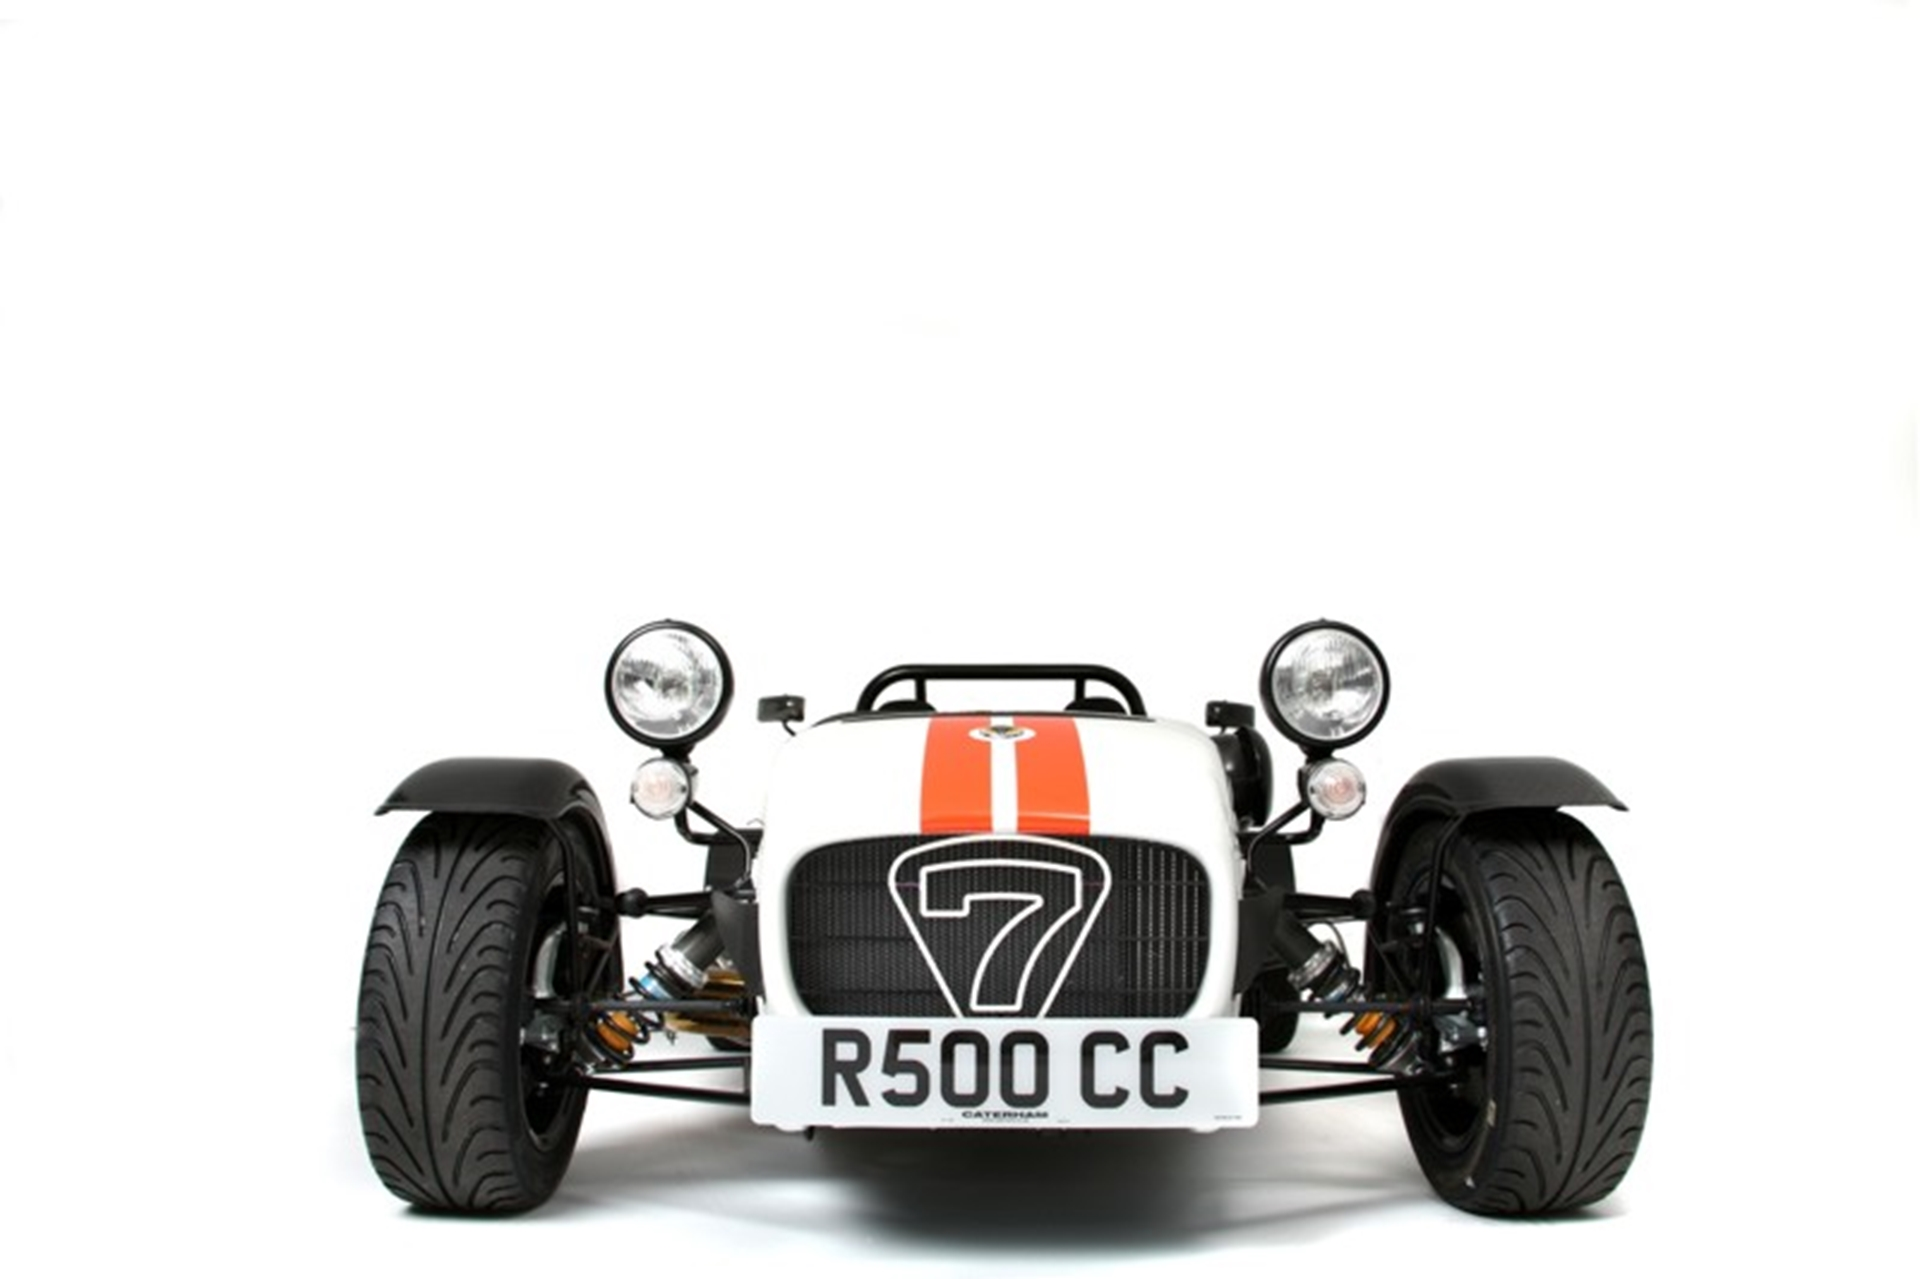 The Caterham R500